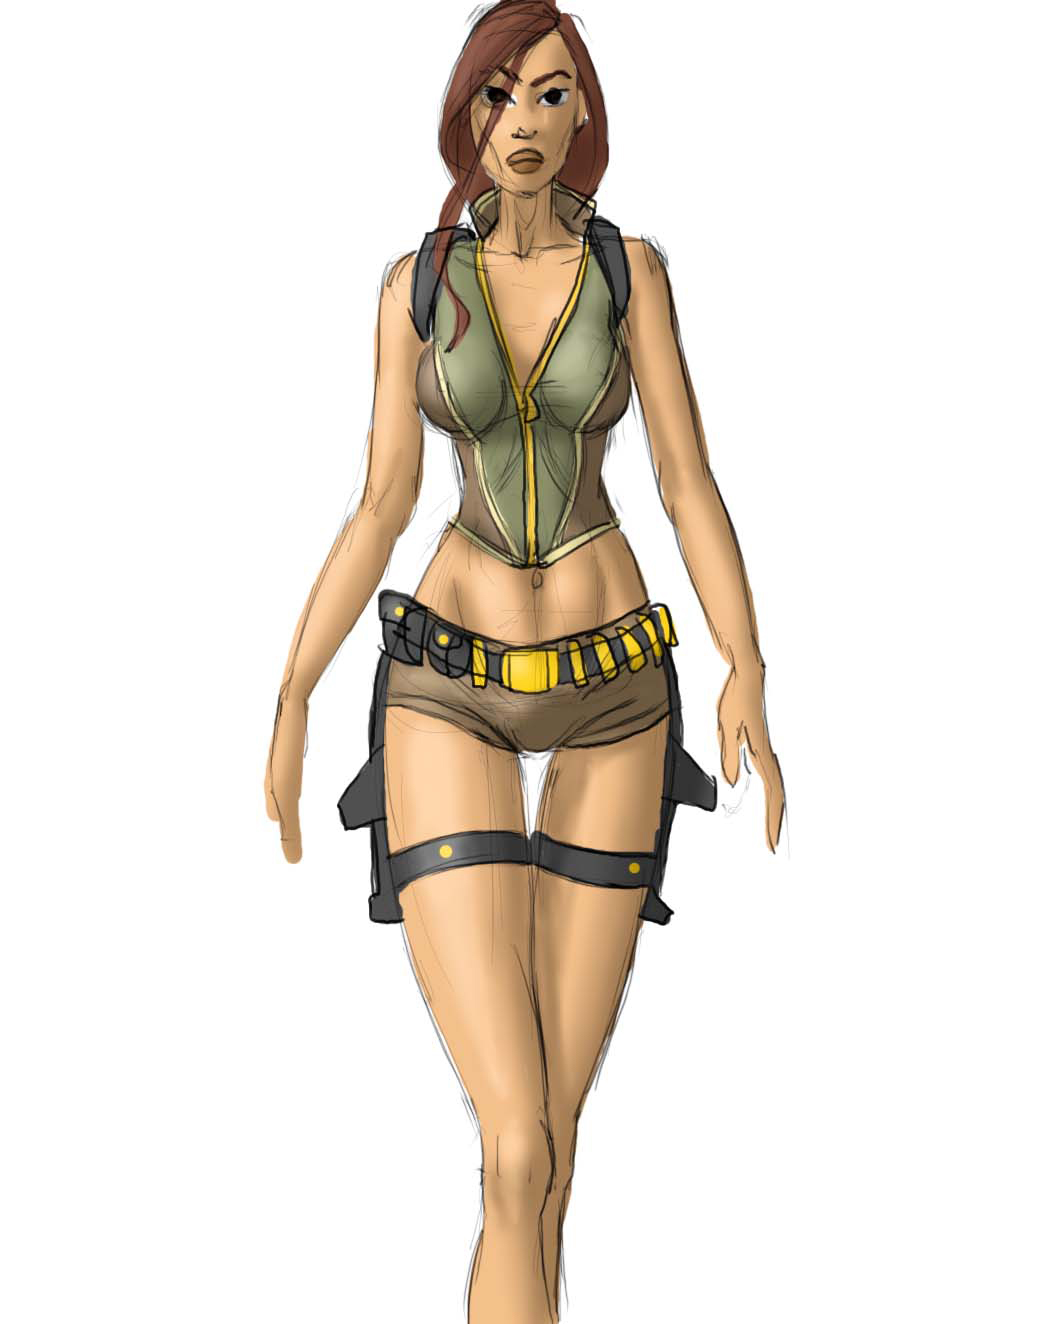 lara croft exploration tomb raider legend outfit